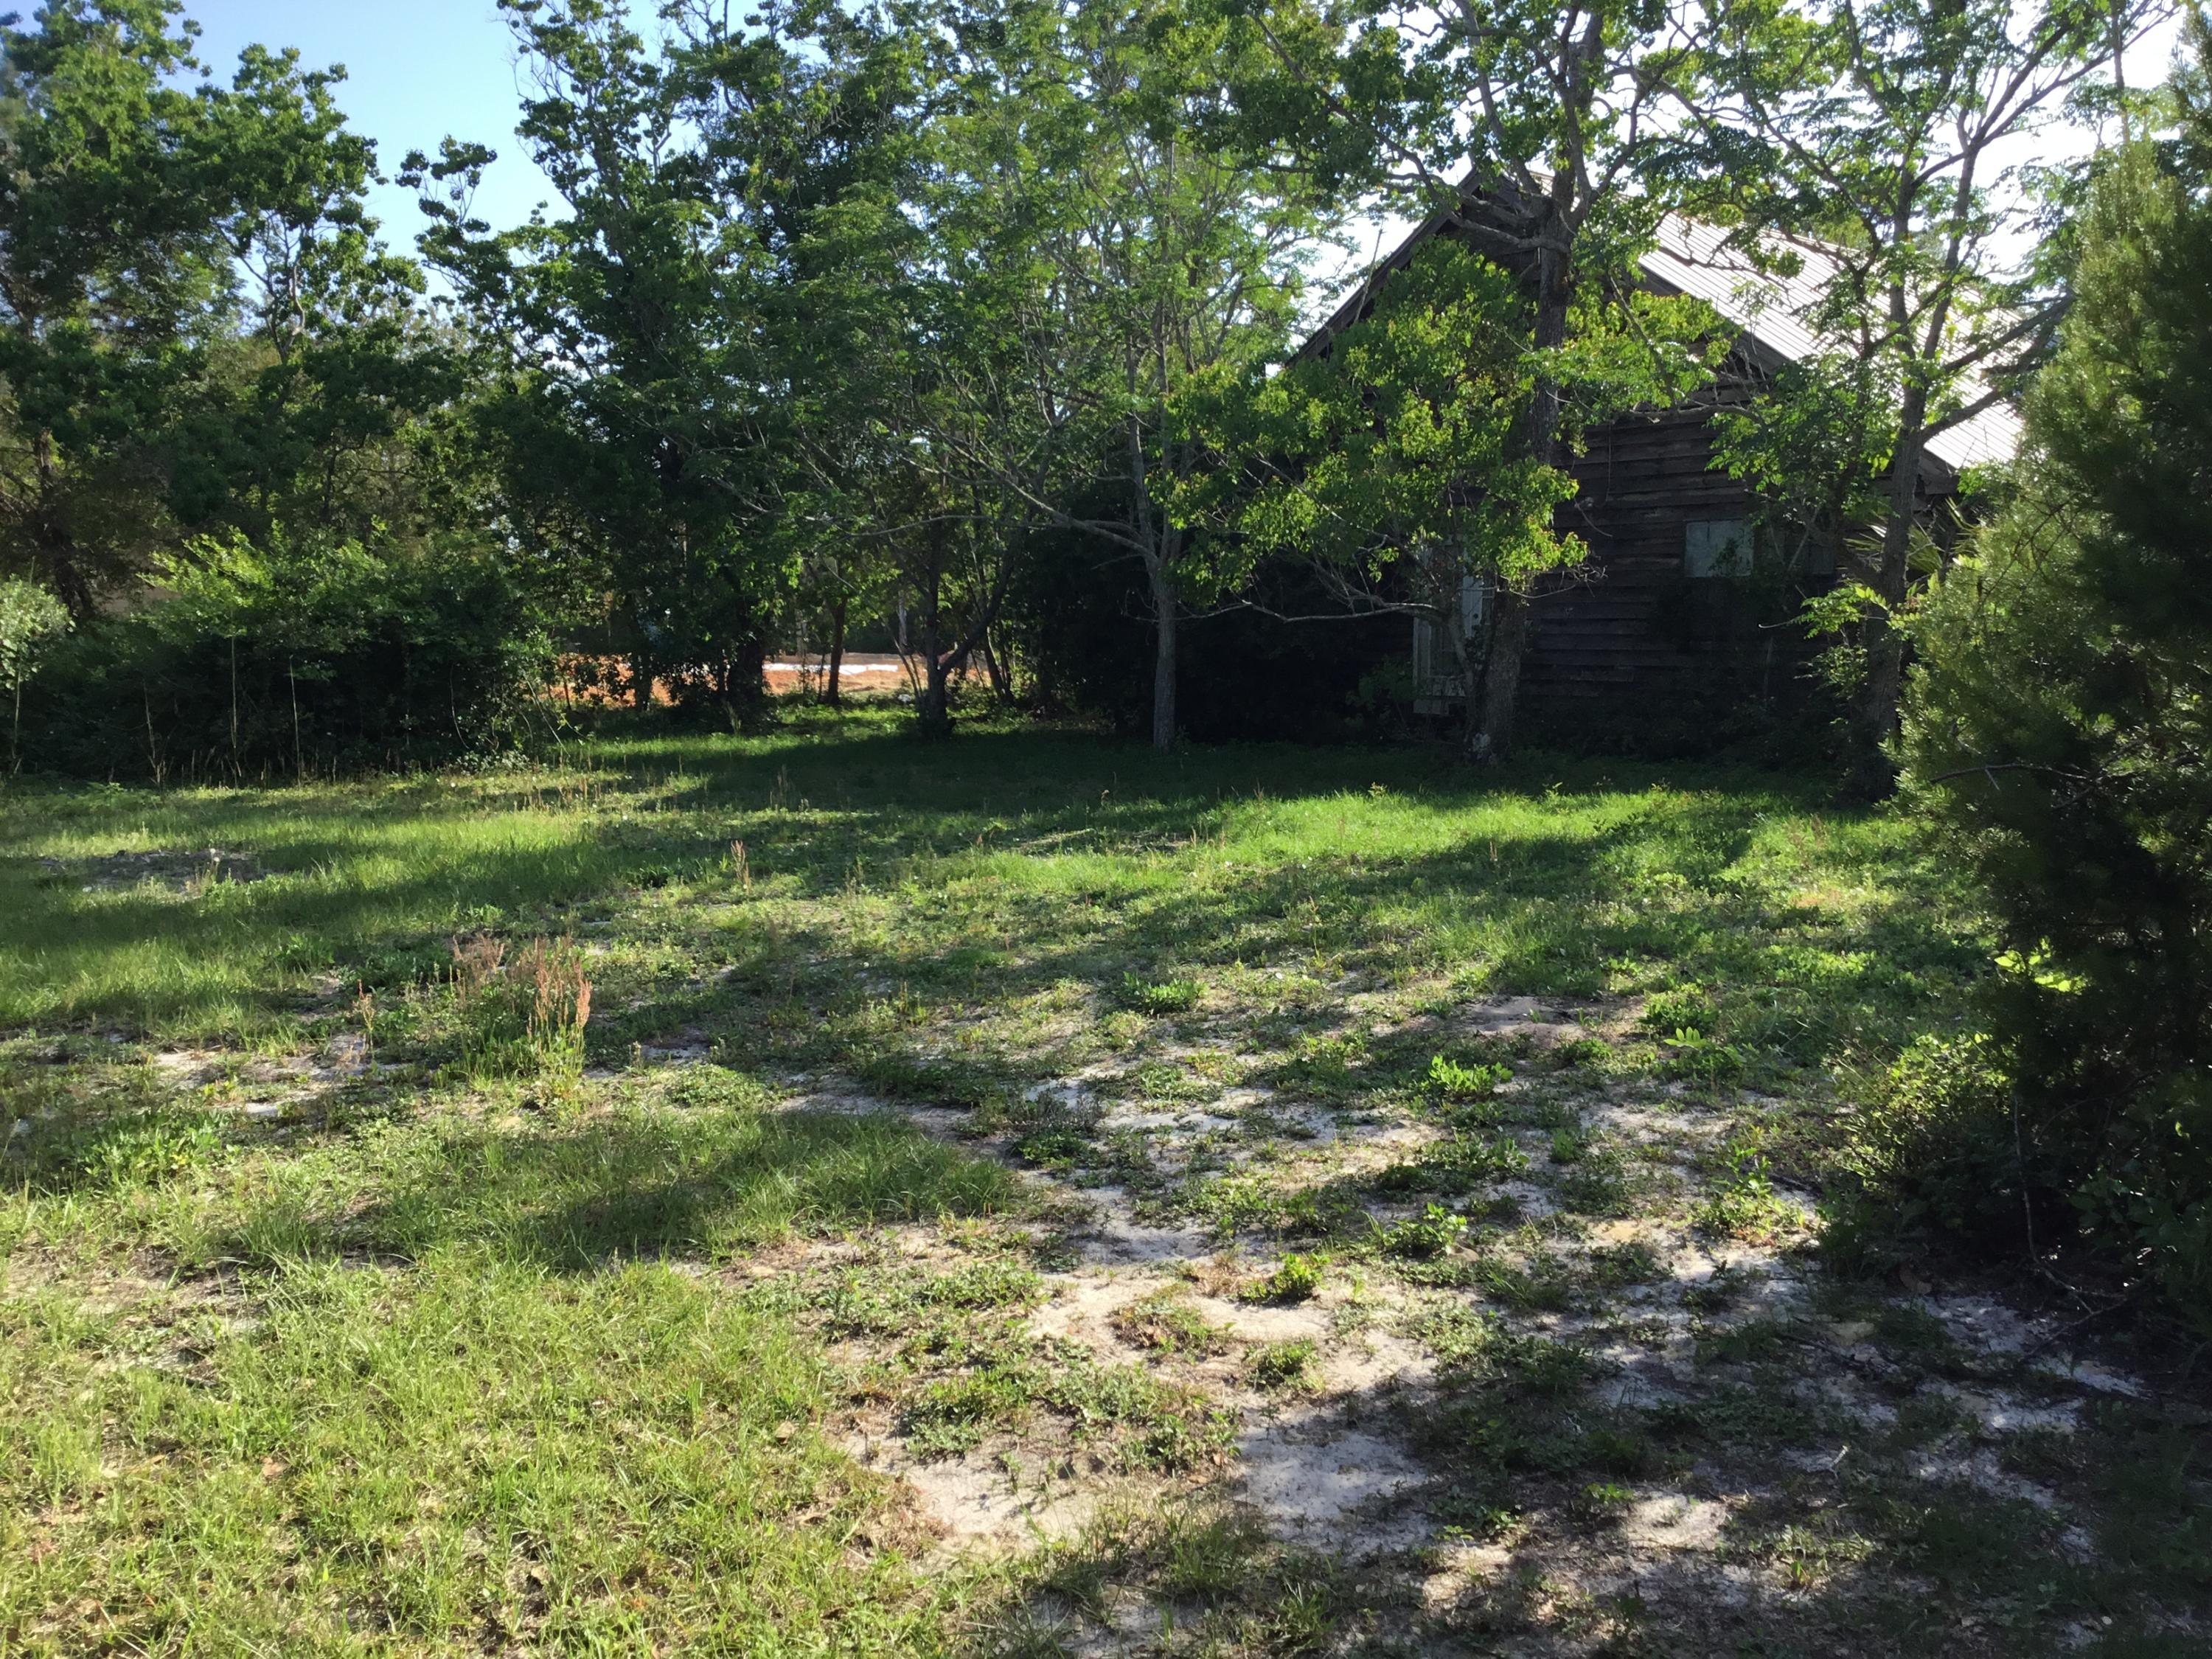 Incredible location on a corner lot just a few blocks from the beaches of 30A. Investor double lot to build on. Home could be renovated with some imagination or taken down and some of the cedar wood could be recycled to use on a new home. New construction is going on directly adjacent to the parcel. Buyer to verify all data and dimensions.